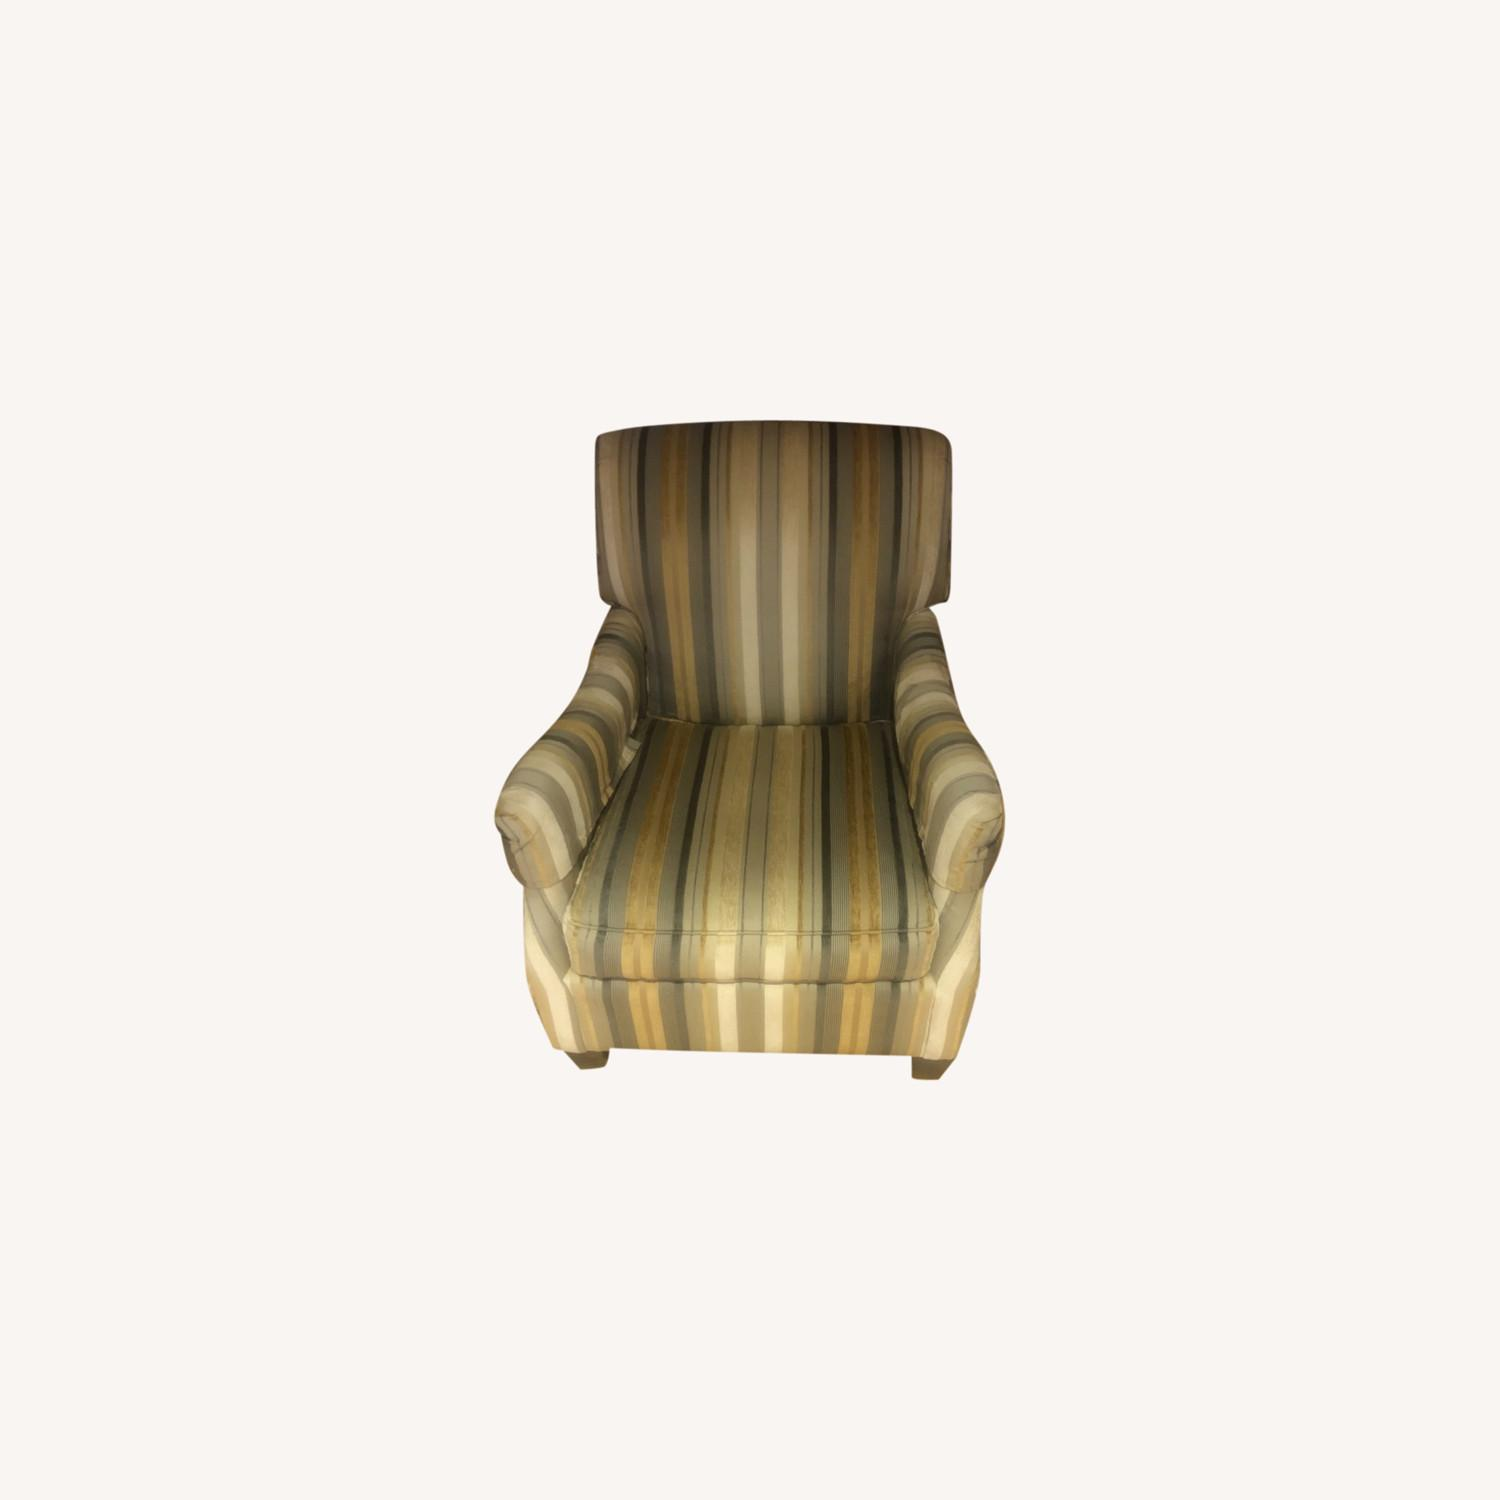 Dennis LennerVery Cushioned Comfortable Arm Chair - image-0